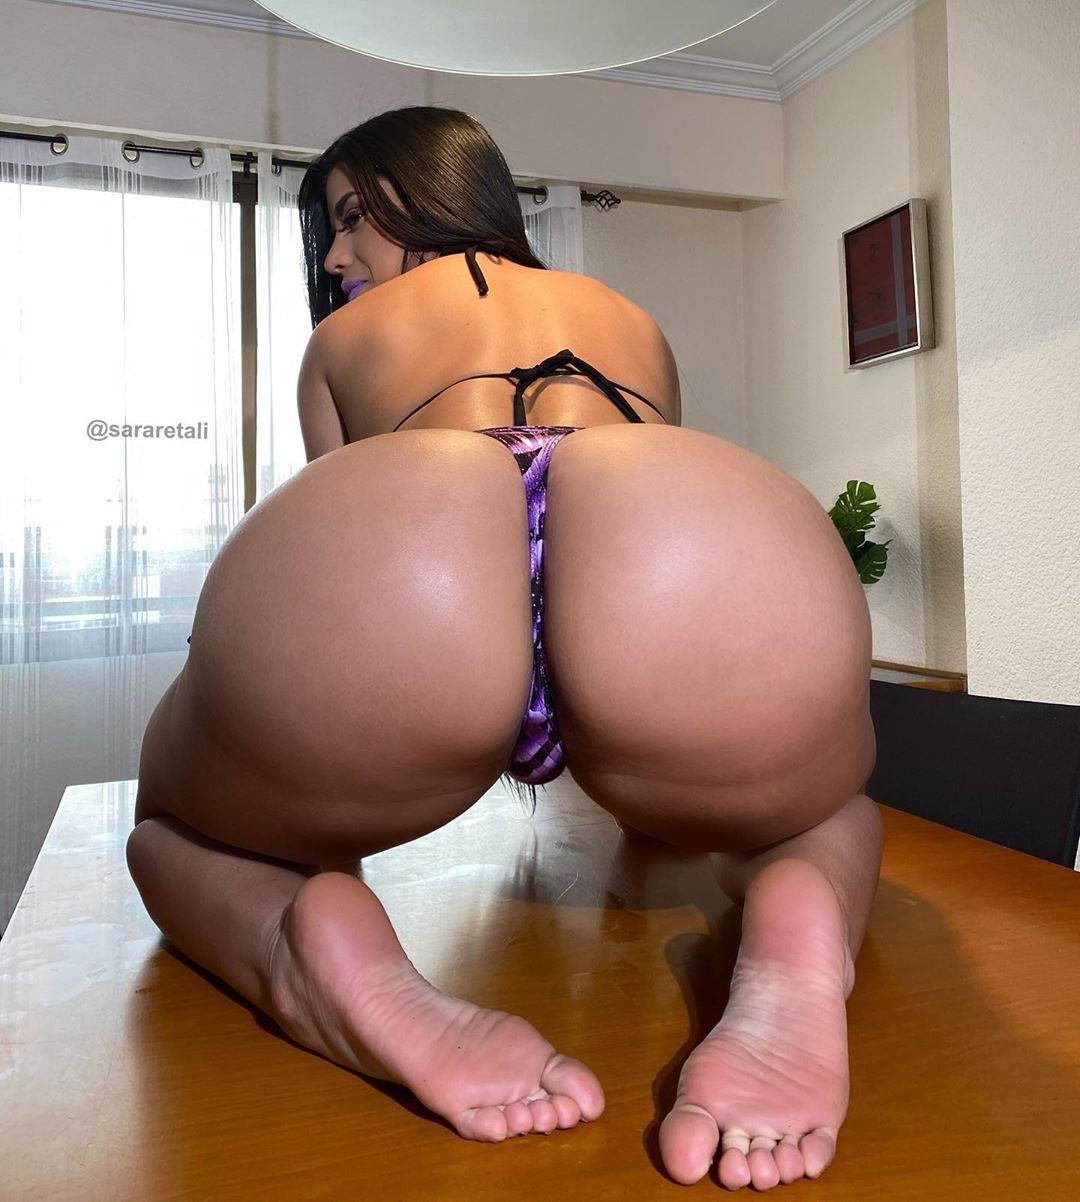 NEW PORN: Sara Vixen Nude & Sex Tape Onlyfans Leaked!